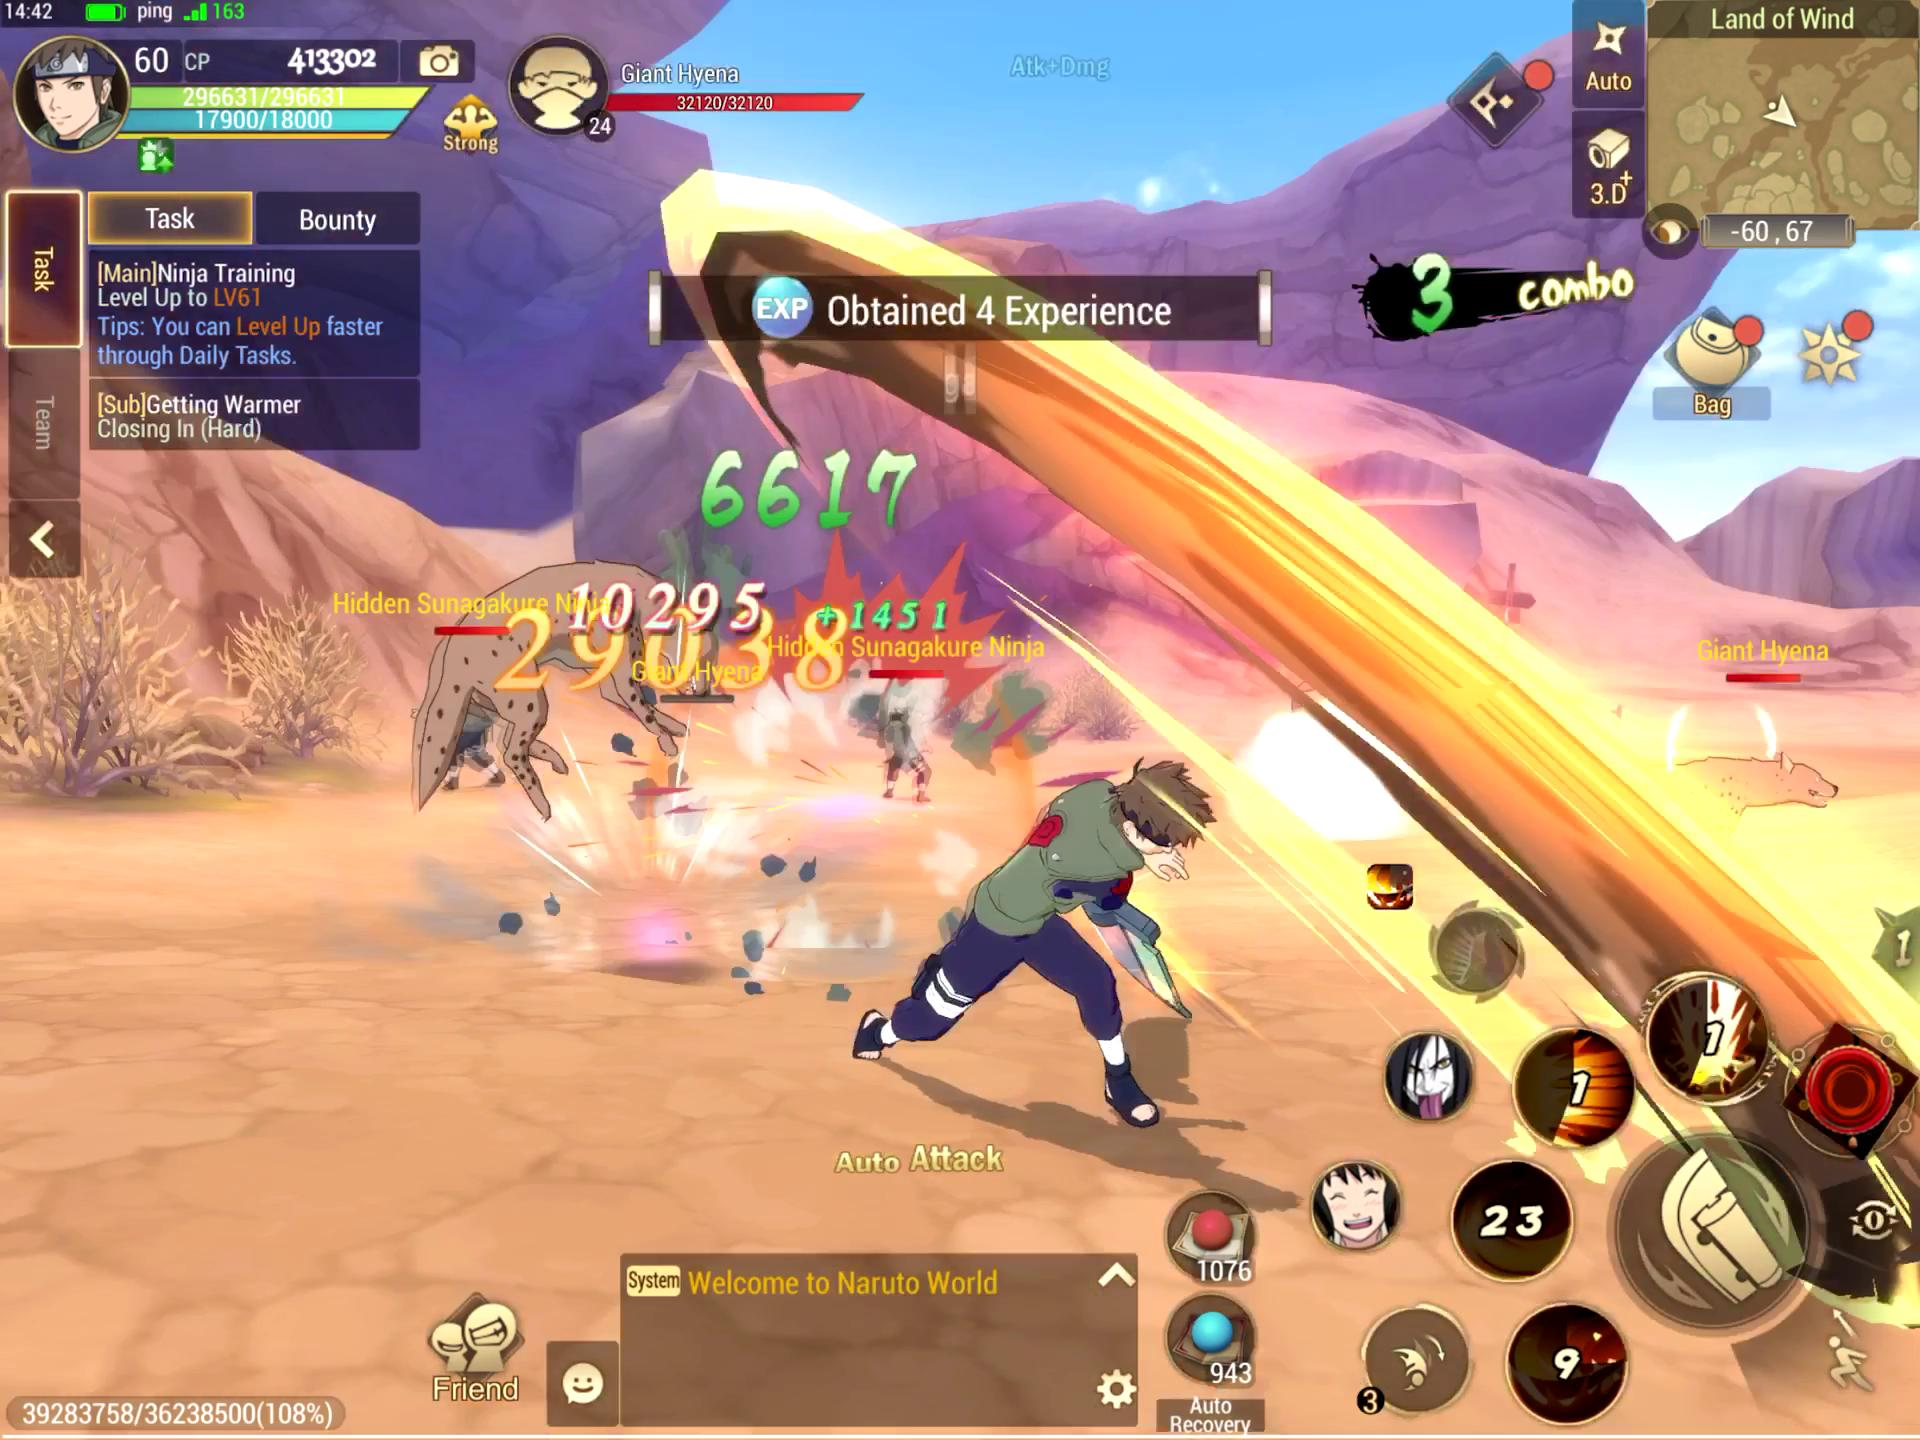 Naruto: Slugfest for Android - APK Download